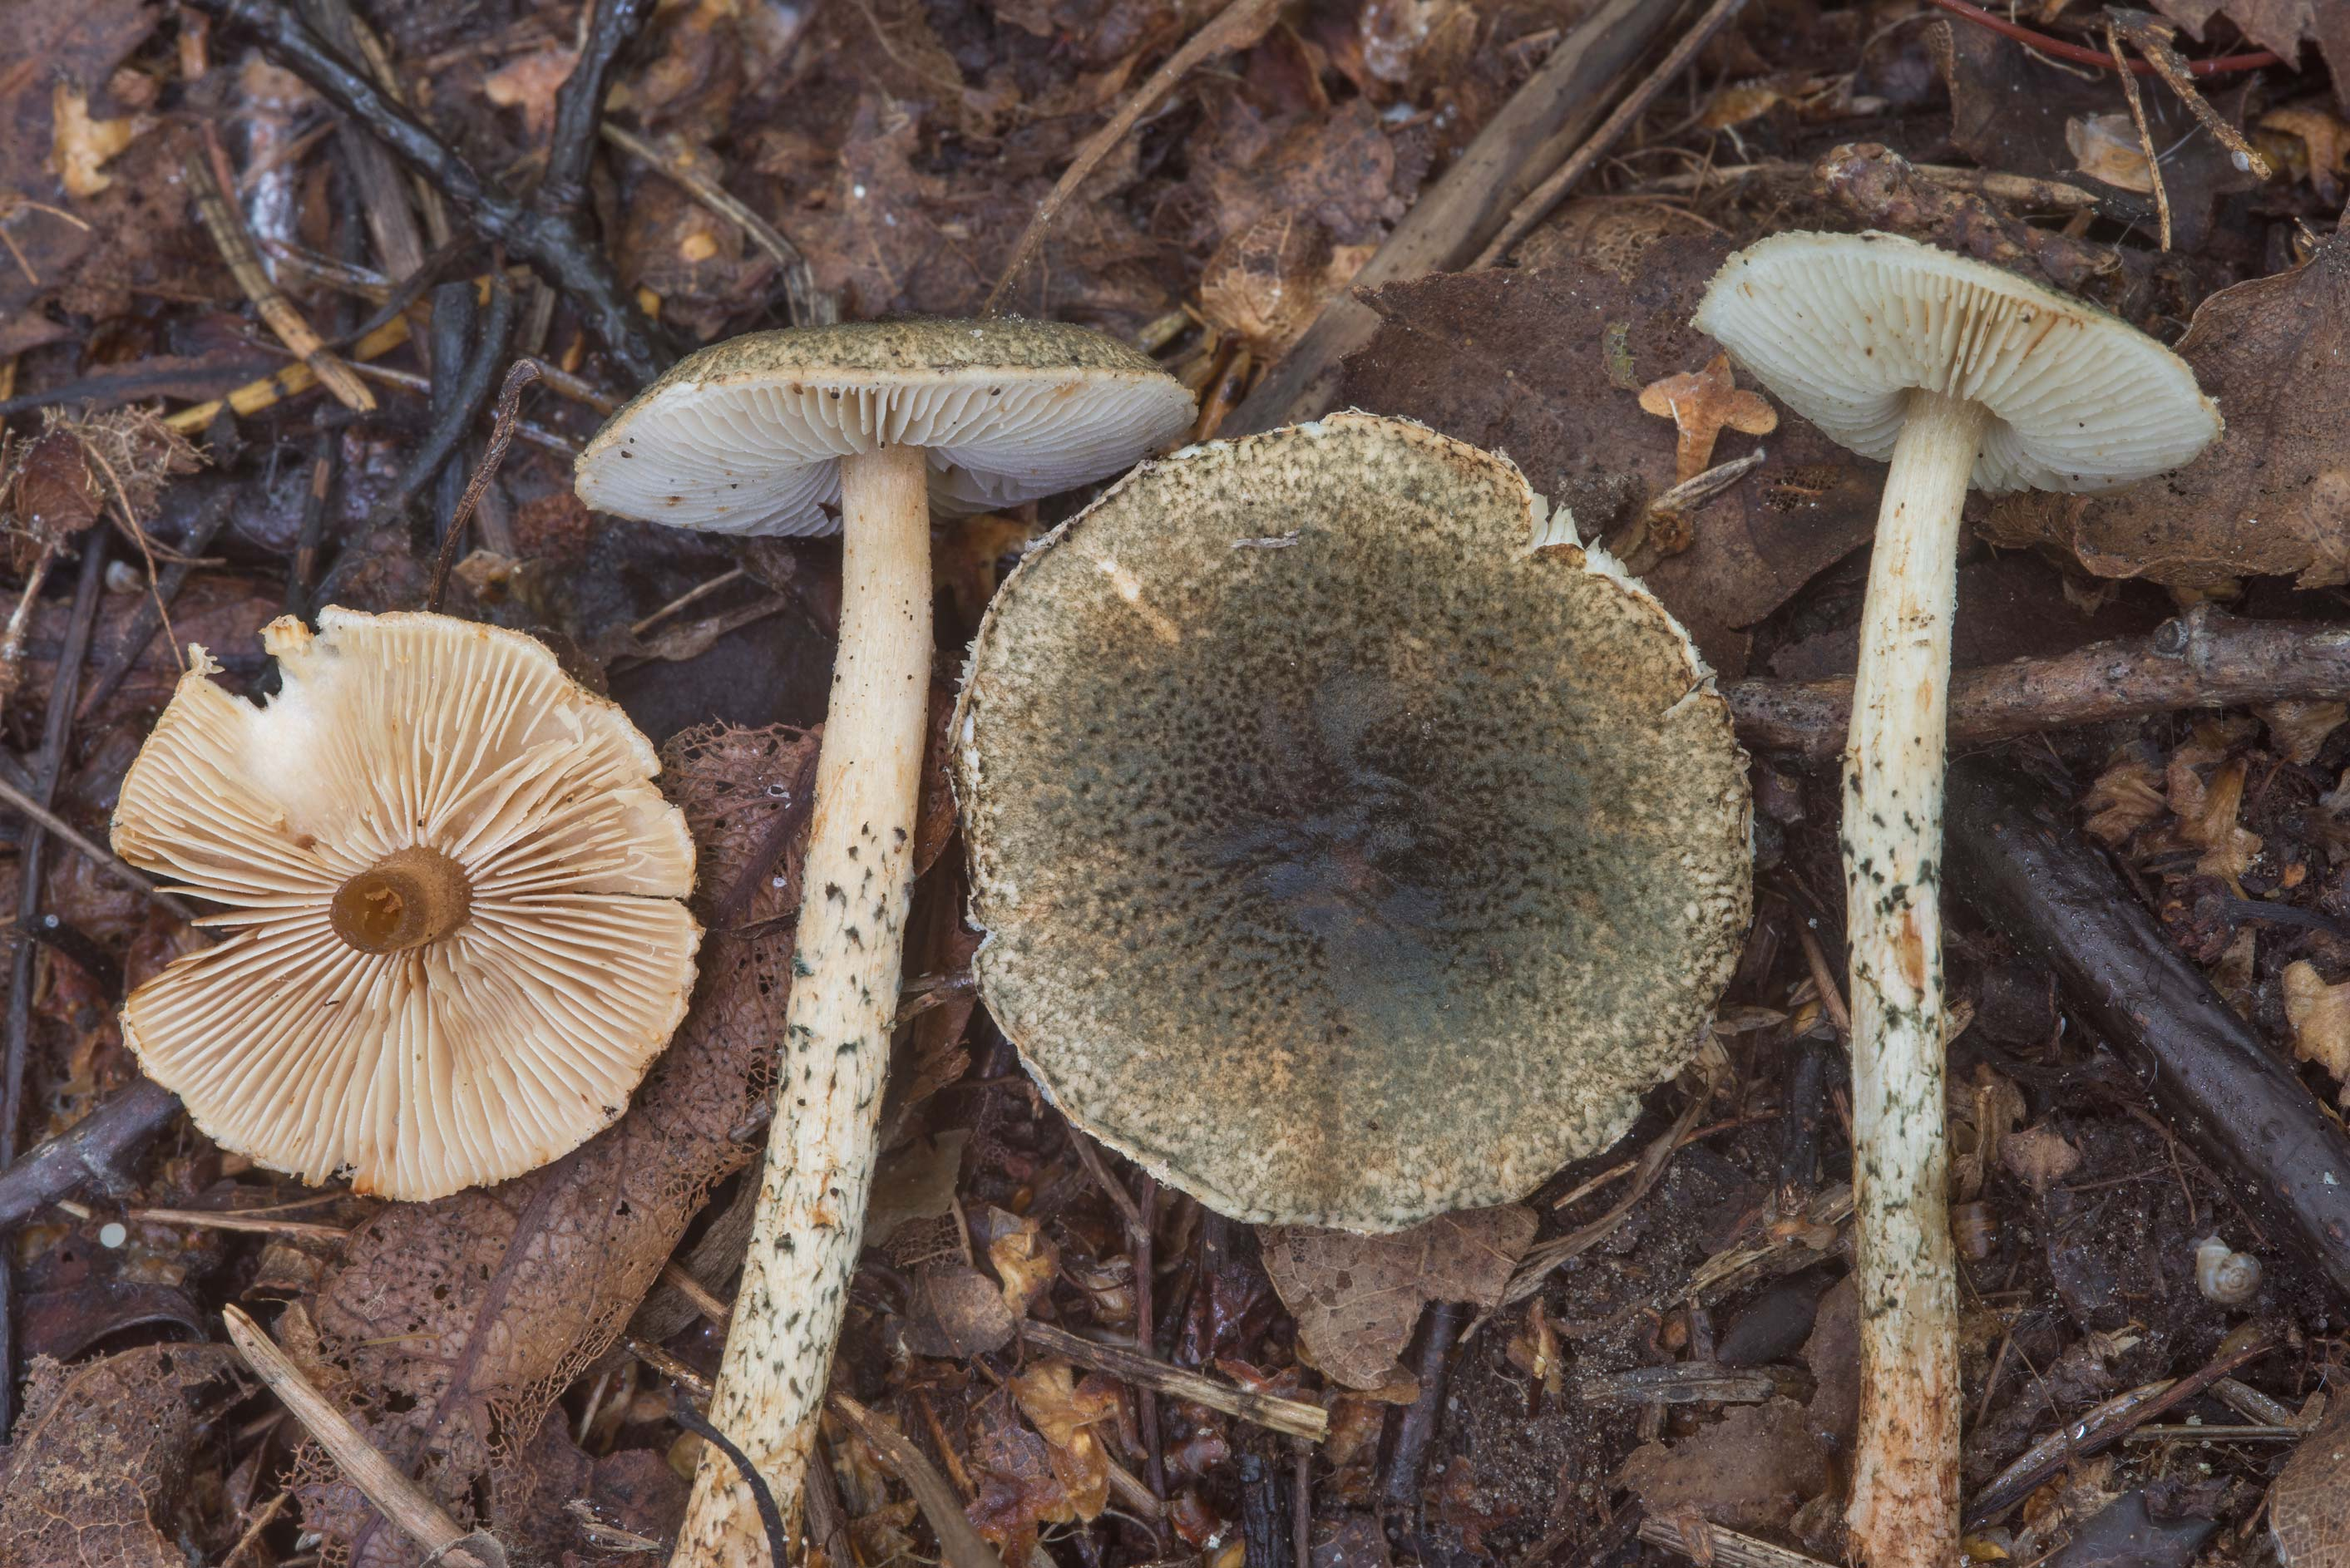 Slideshow 2352-24: Dark scales of green dapperling mushrooms